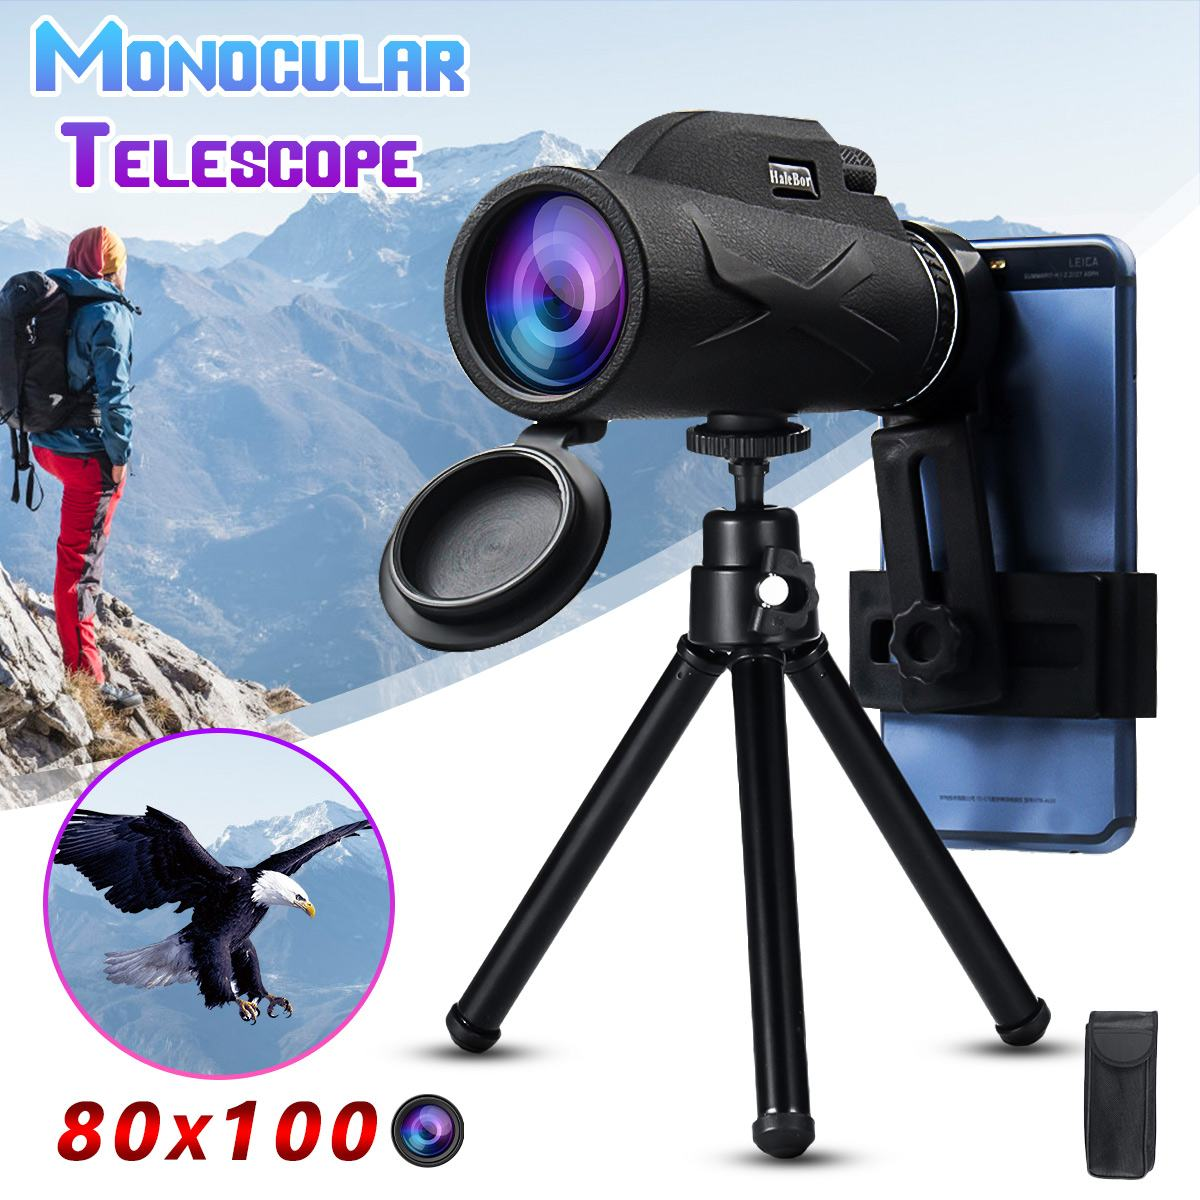 Monocular Telescope Objective-Lens Mobile for Military Eyepiece Handheld Hunting-Optics title=